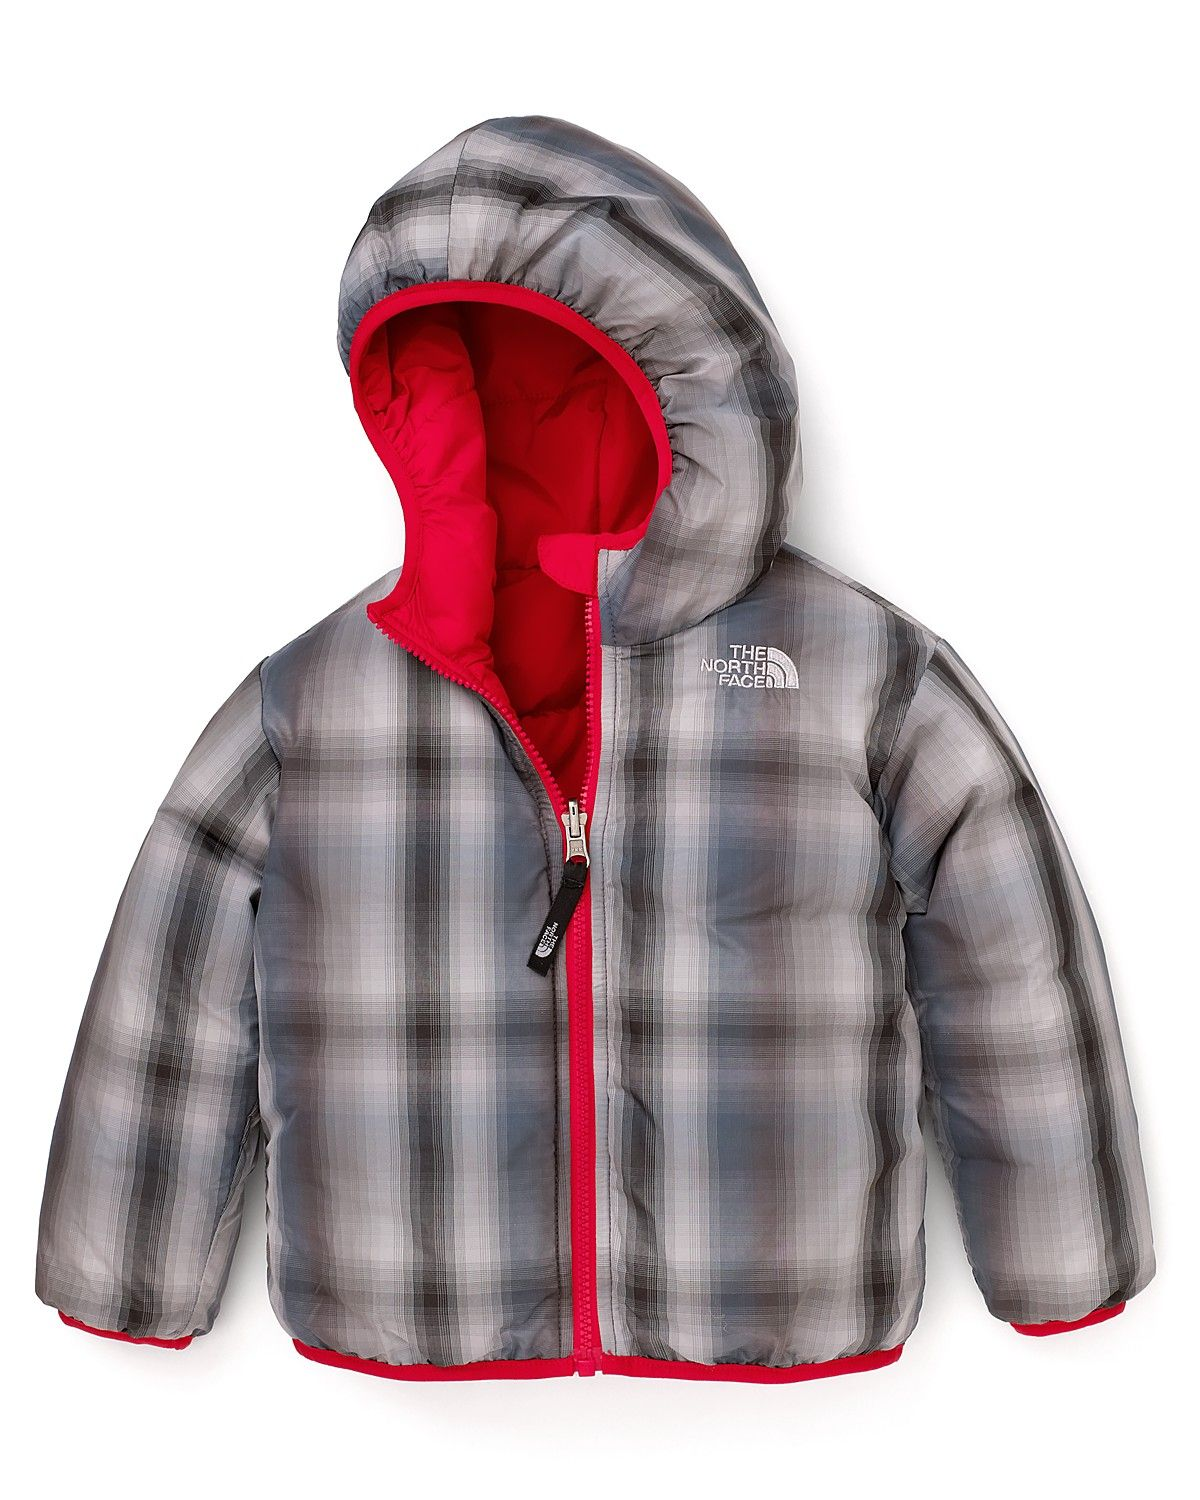 The North Face Toddler Boys Reversible Down Moondoggy Jacket Sizes 2t 4t Kids Boys Boys 2 7 Bloomingdale S Toddler Boys Jackets Boys [ 1500 x 1200 Pixel ]